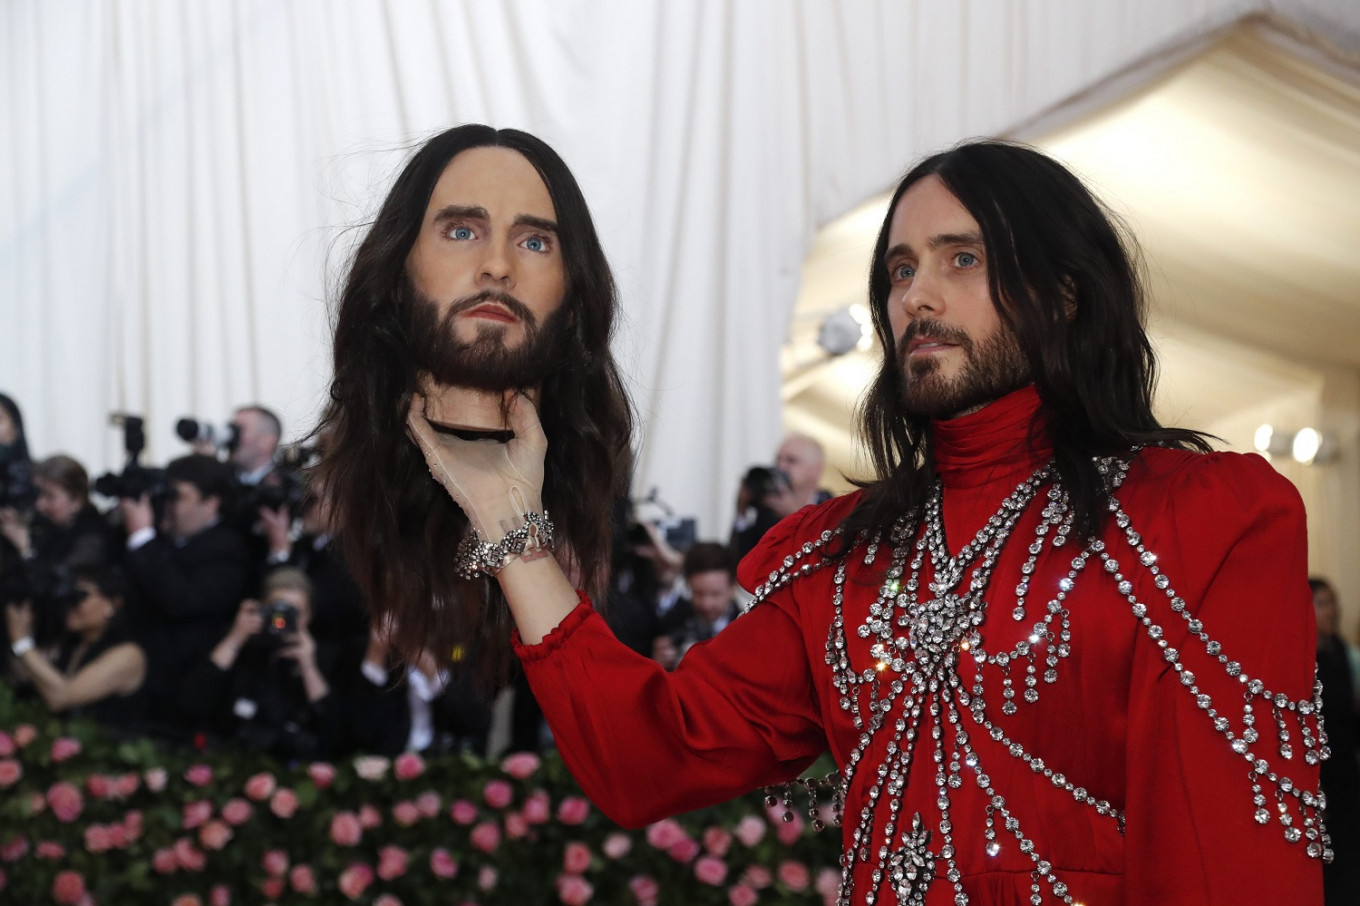 Jared Leto at the Metropolitan Museum of Art Costume Institute Gala in New York City, US, on May 6, 2019.